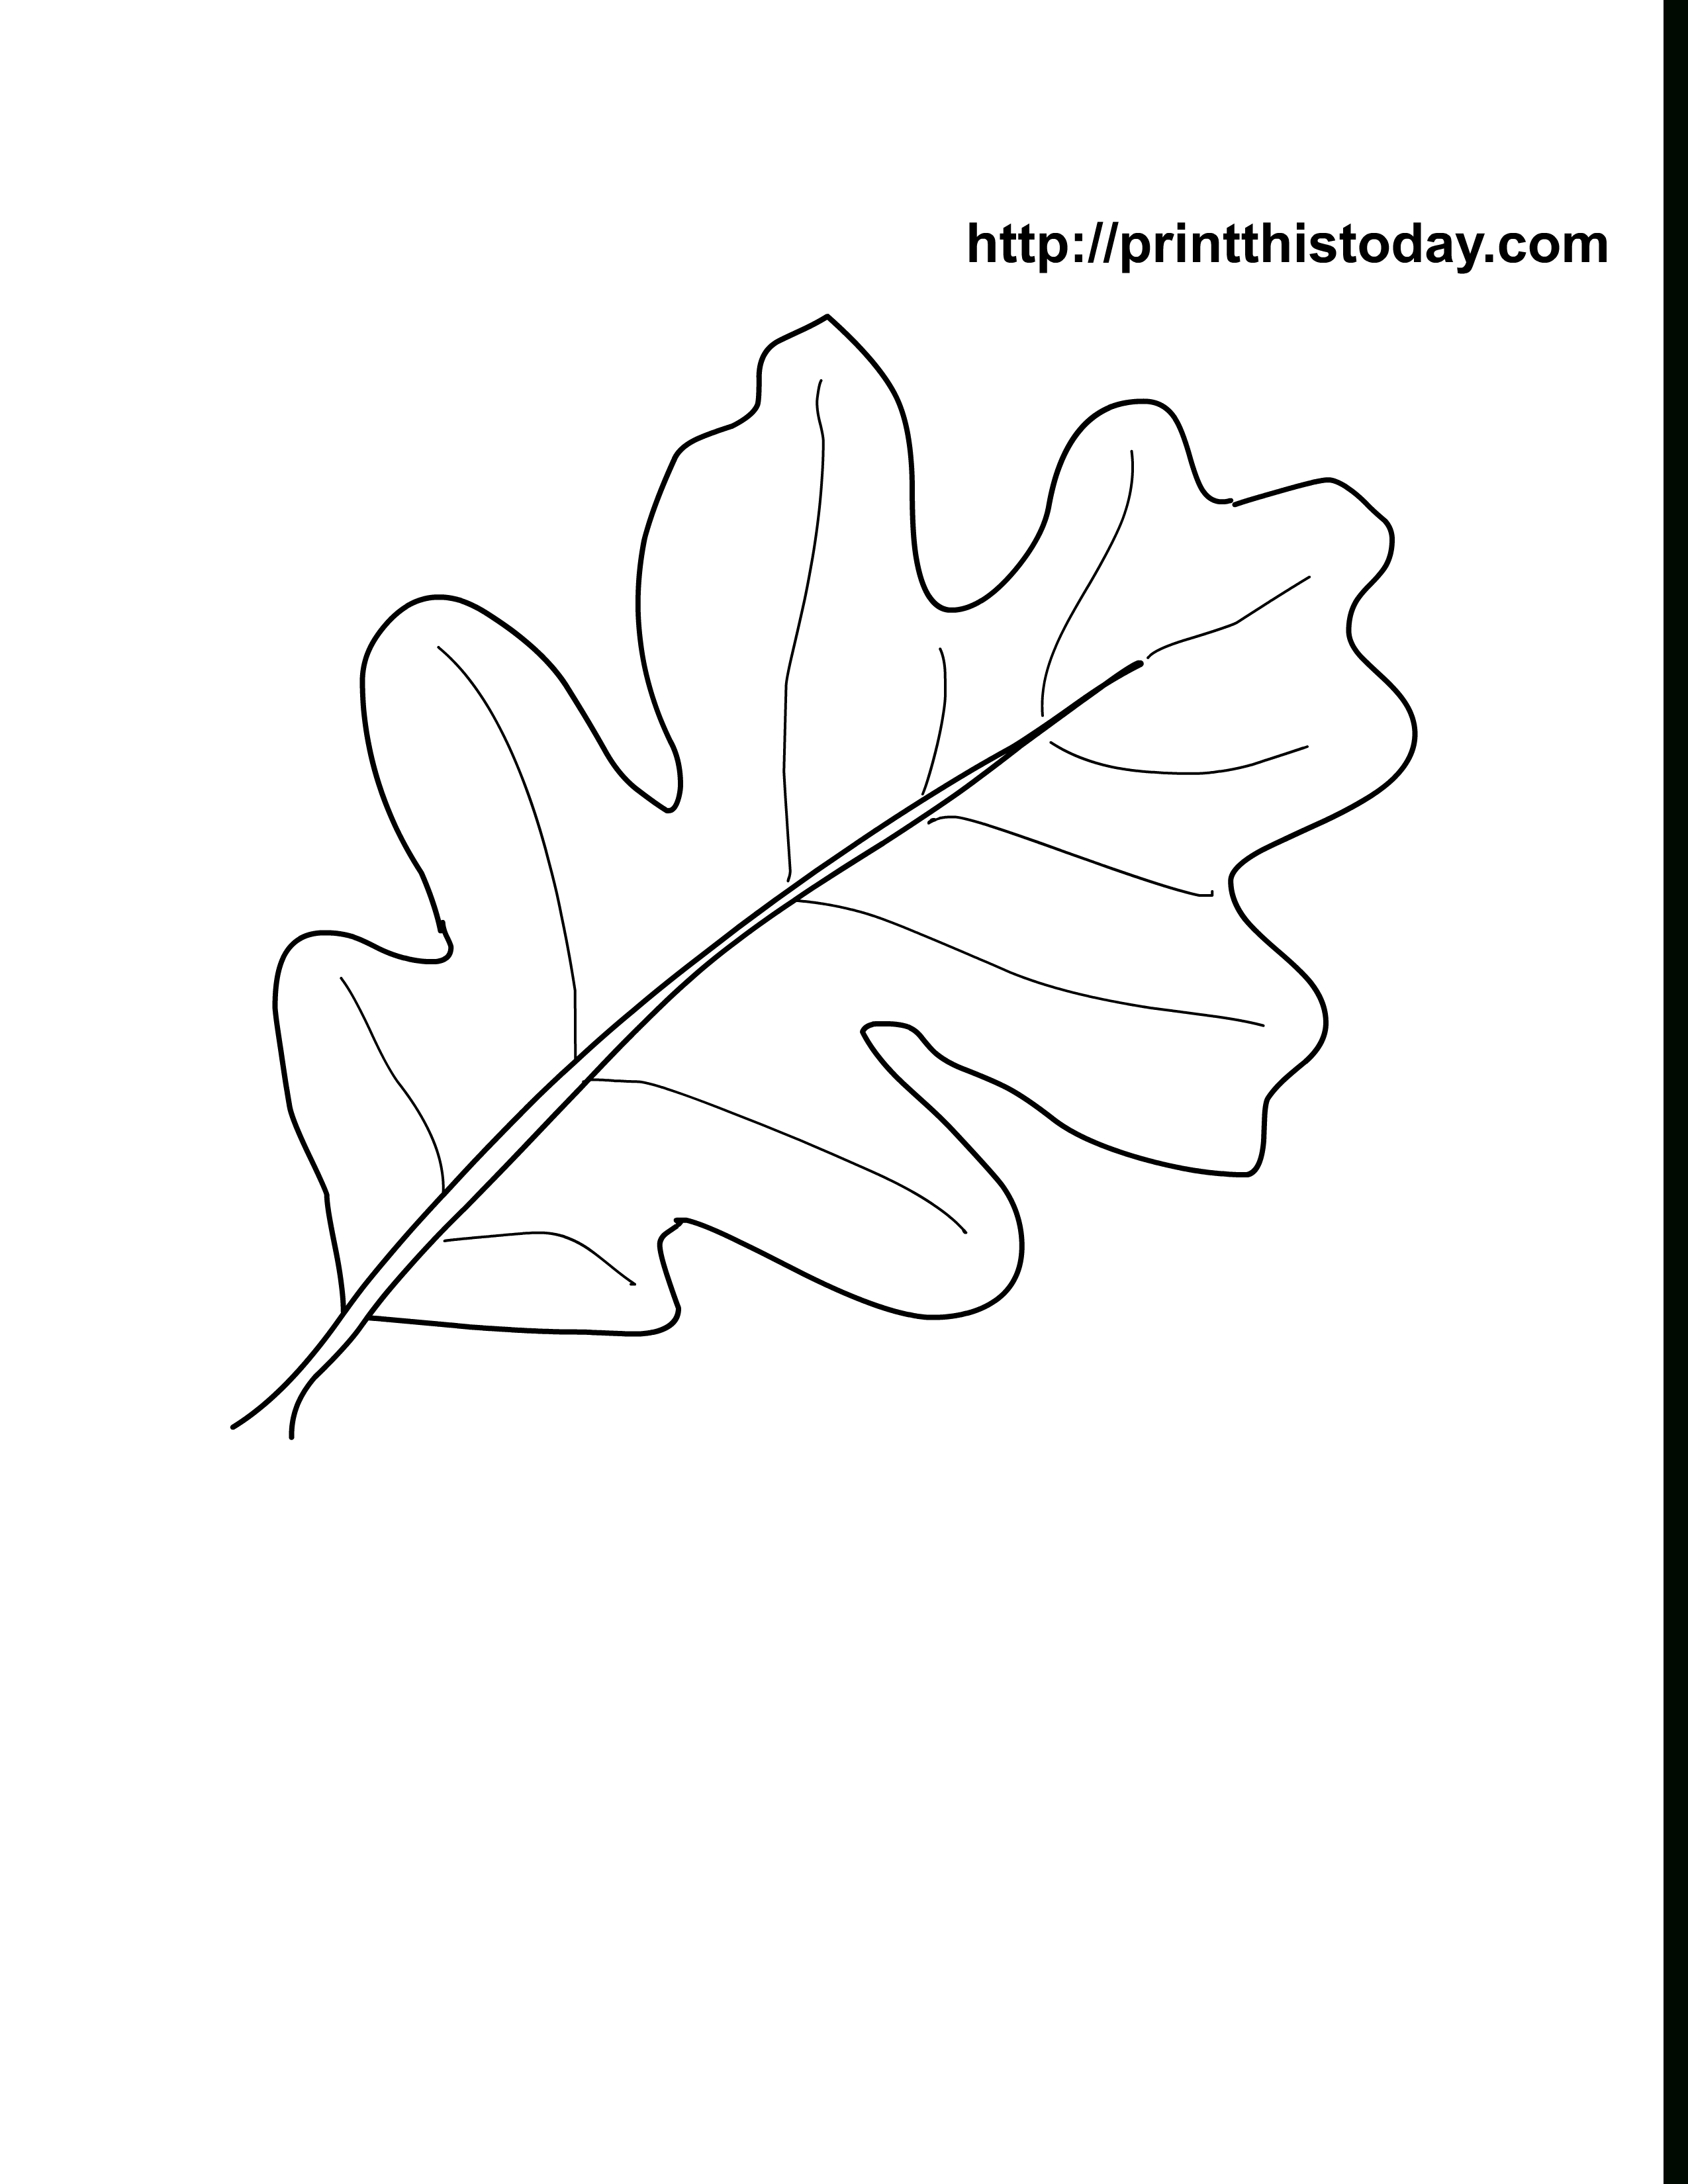 Oak Leaves Coloring Pages Printable | Craft Ideas | Leaf Coloring - Free Printable Oak Leaf Patterns